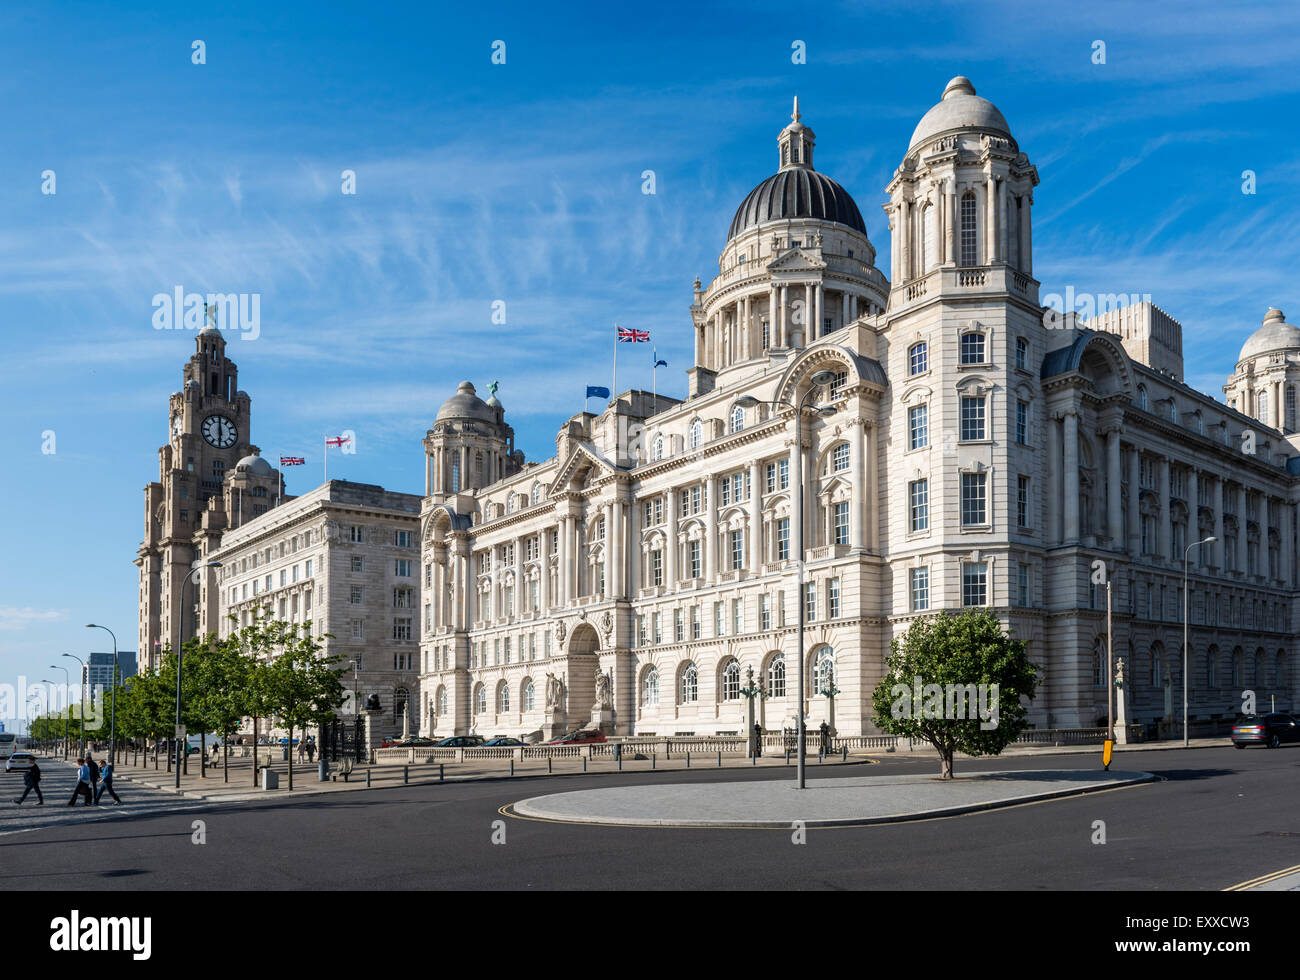 The Port of Liverpool Building, known as the Dock Office, a listed building in Liverpool, England, UK on the waterfront - Stock Image